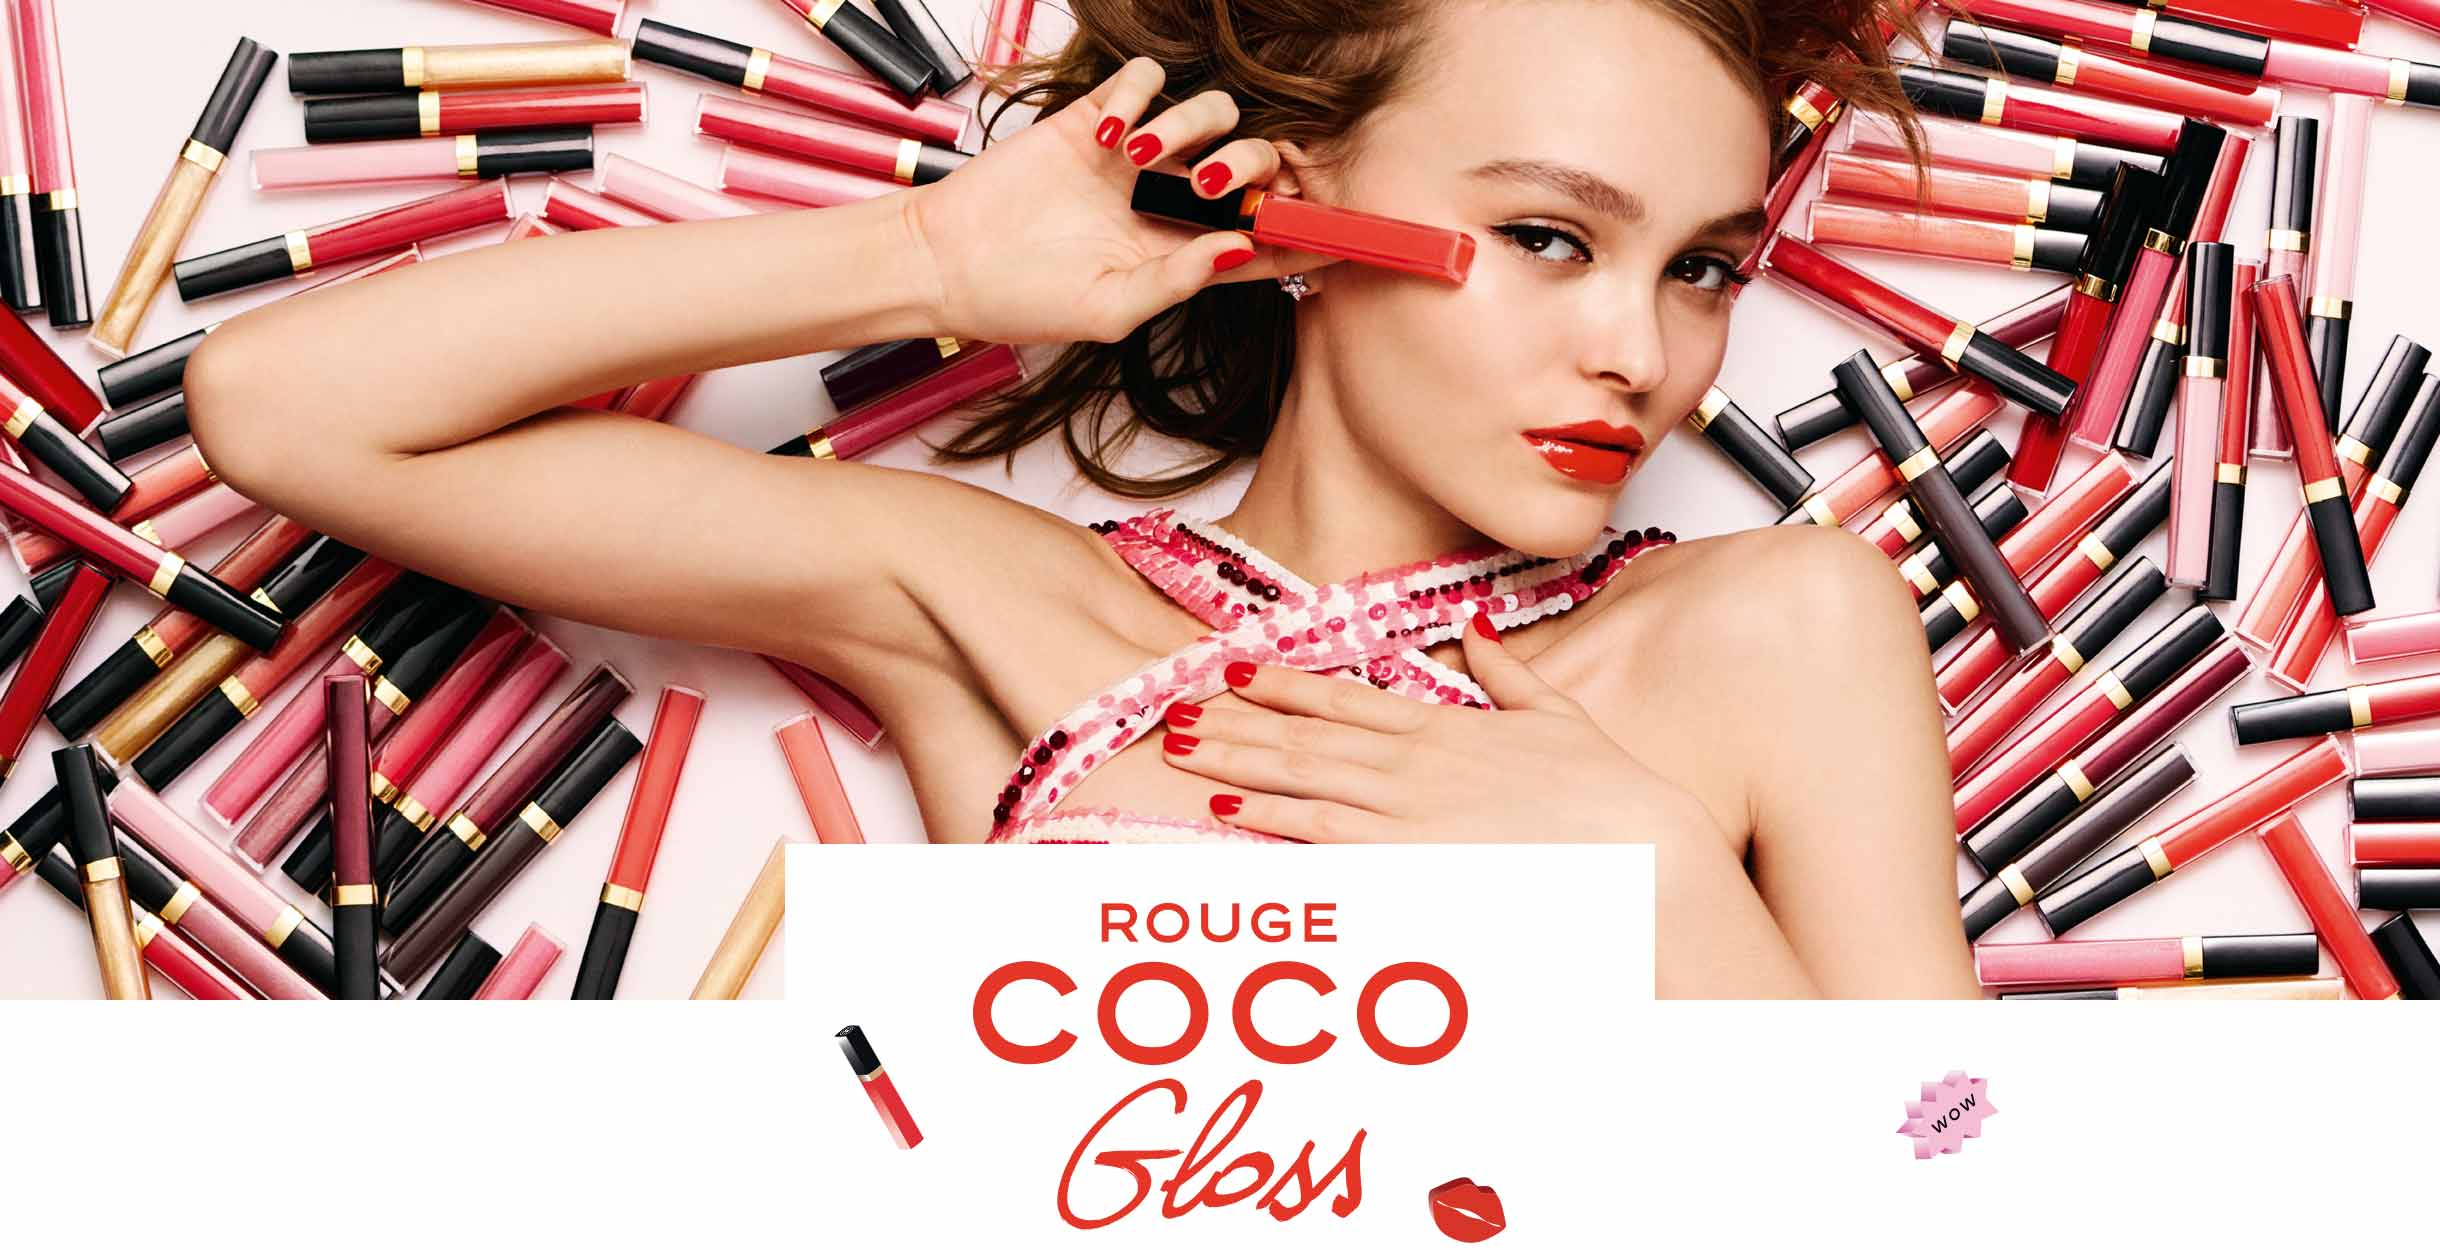 Rouge_Coco_Gloss_2017_Lily-Rose-Depp_hero